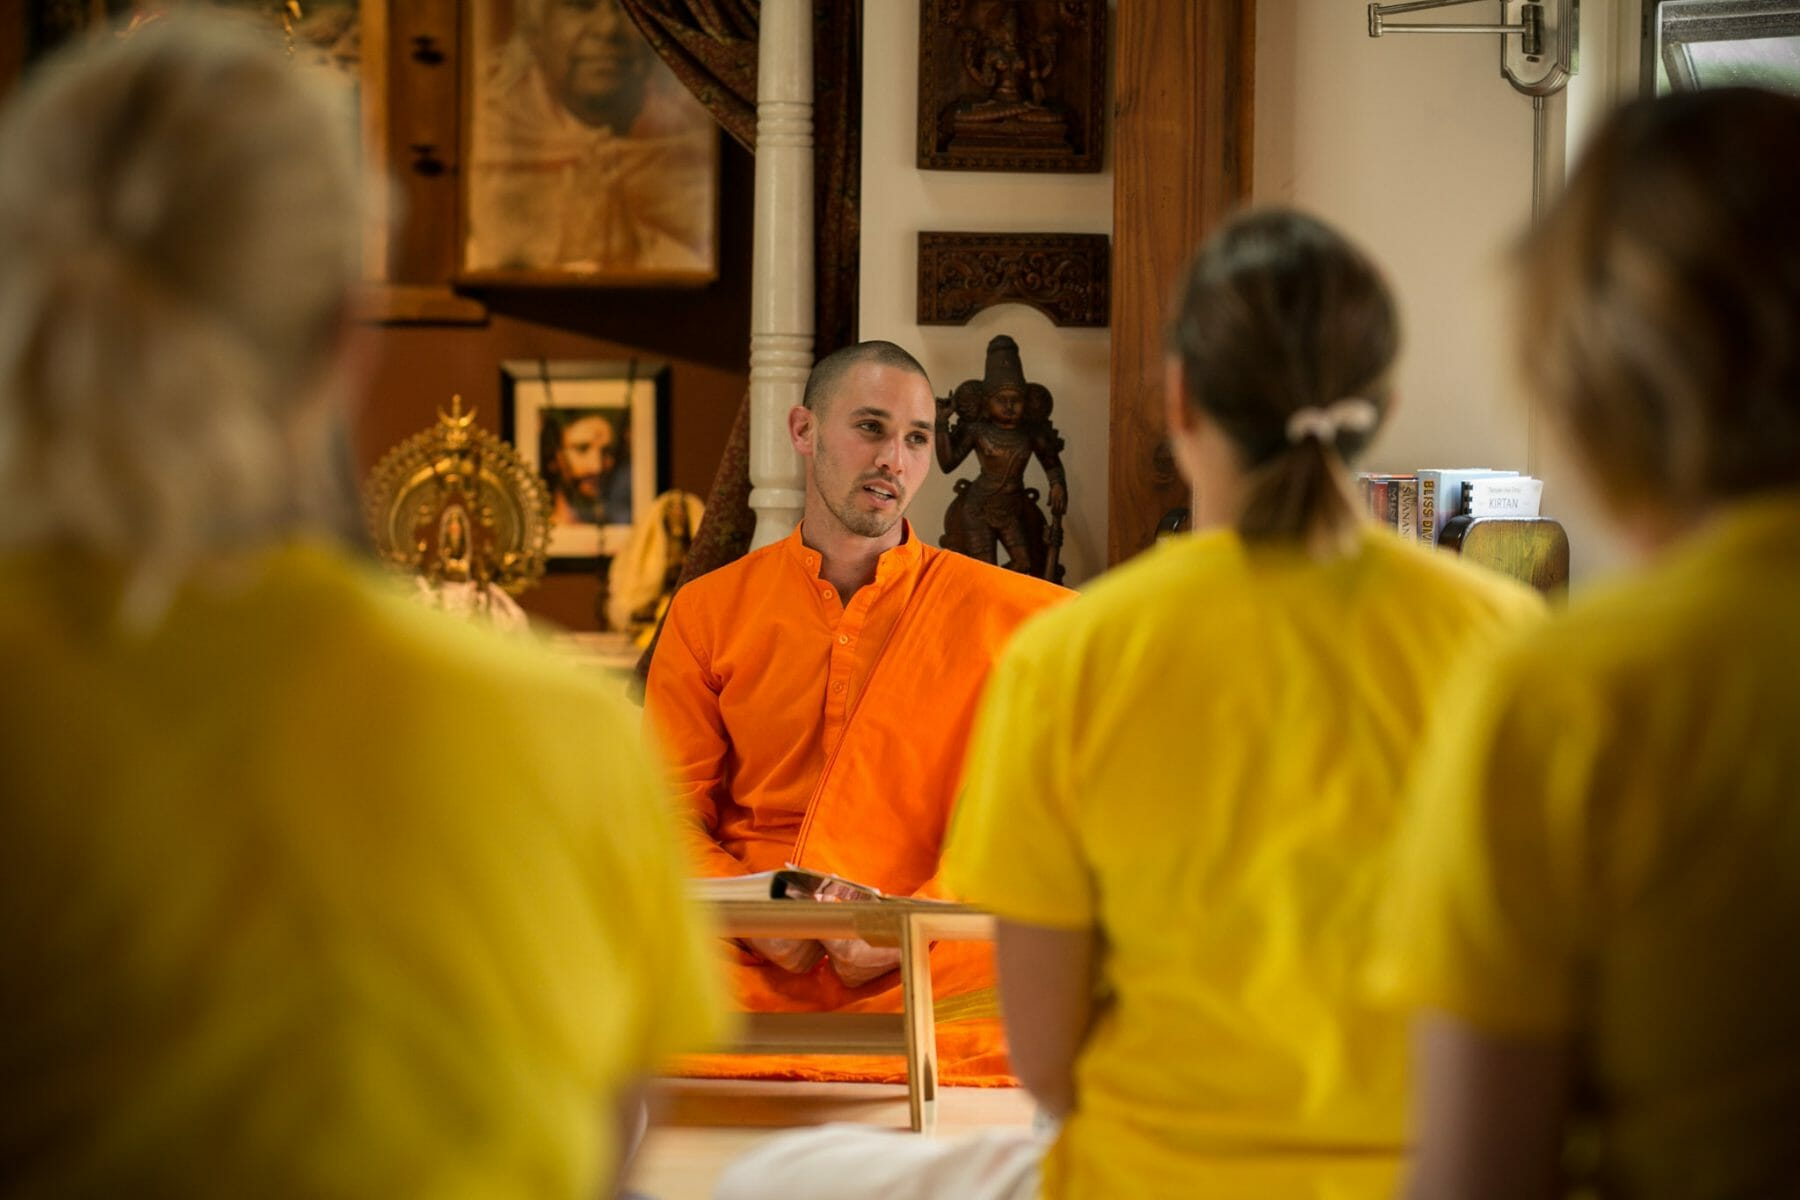 The Art of Positive Thinking at the Sivananda Yoga Ranch